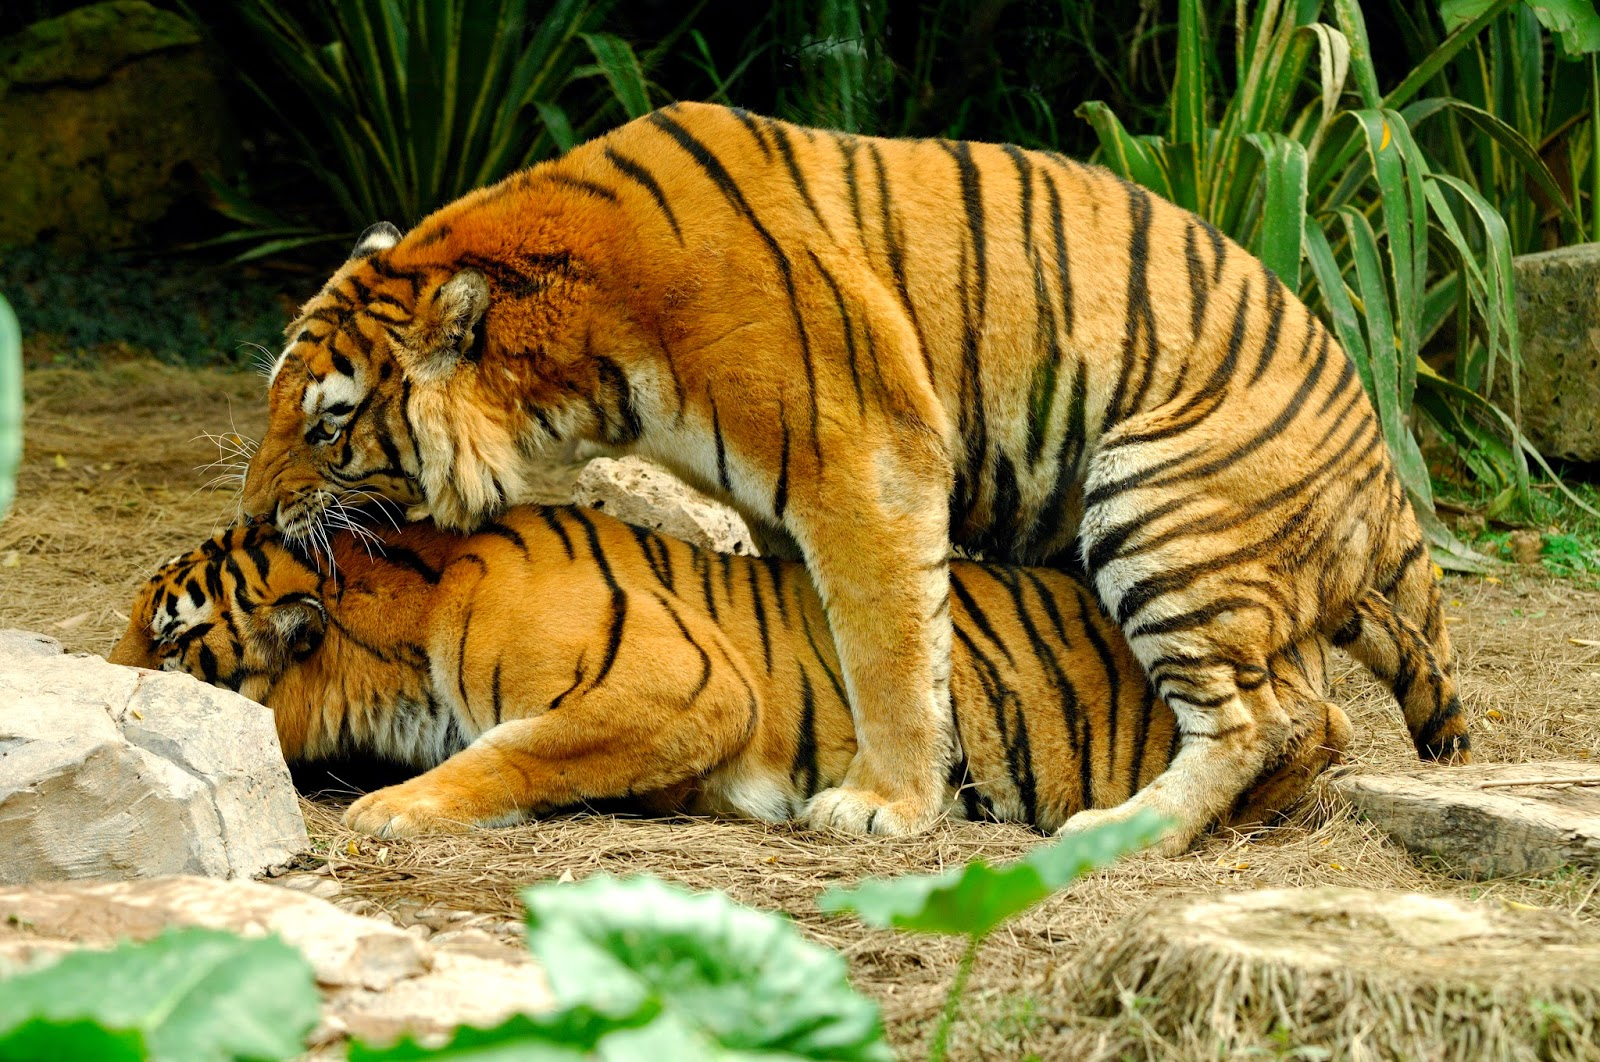 Bengal Tiger images and facts